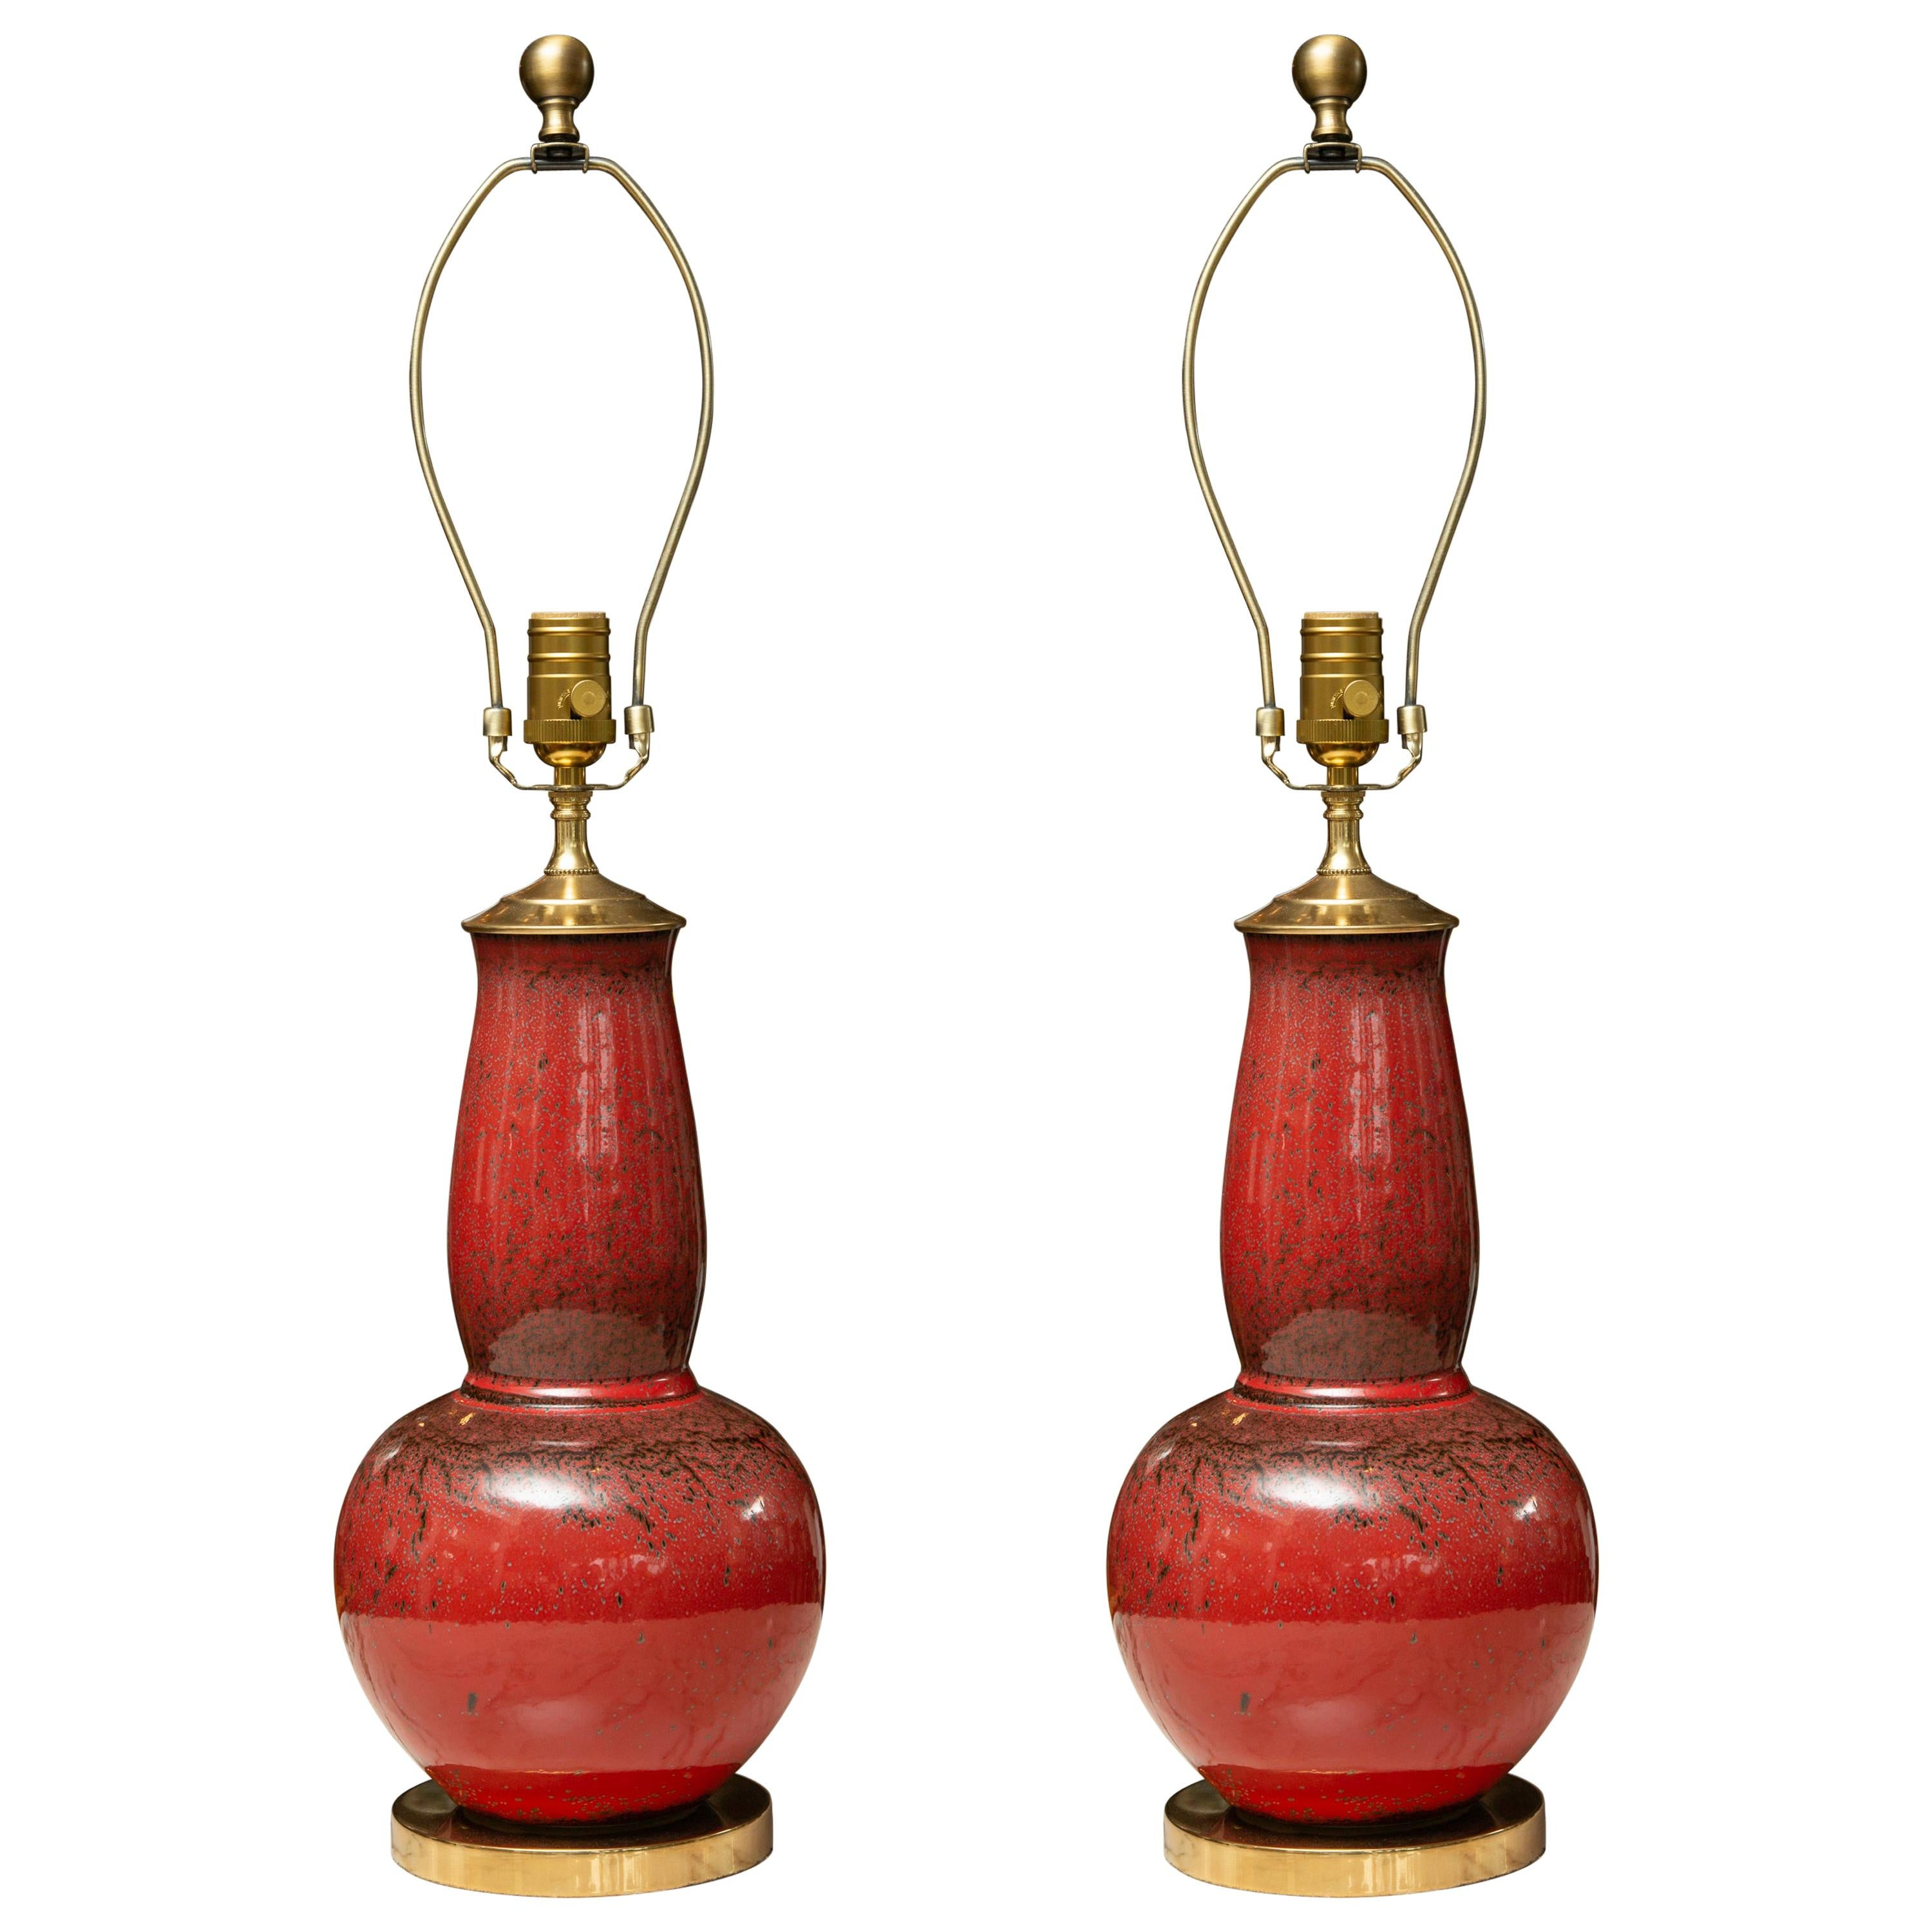 Pair of Deep Red Gourd Vases as Table Lamps